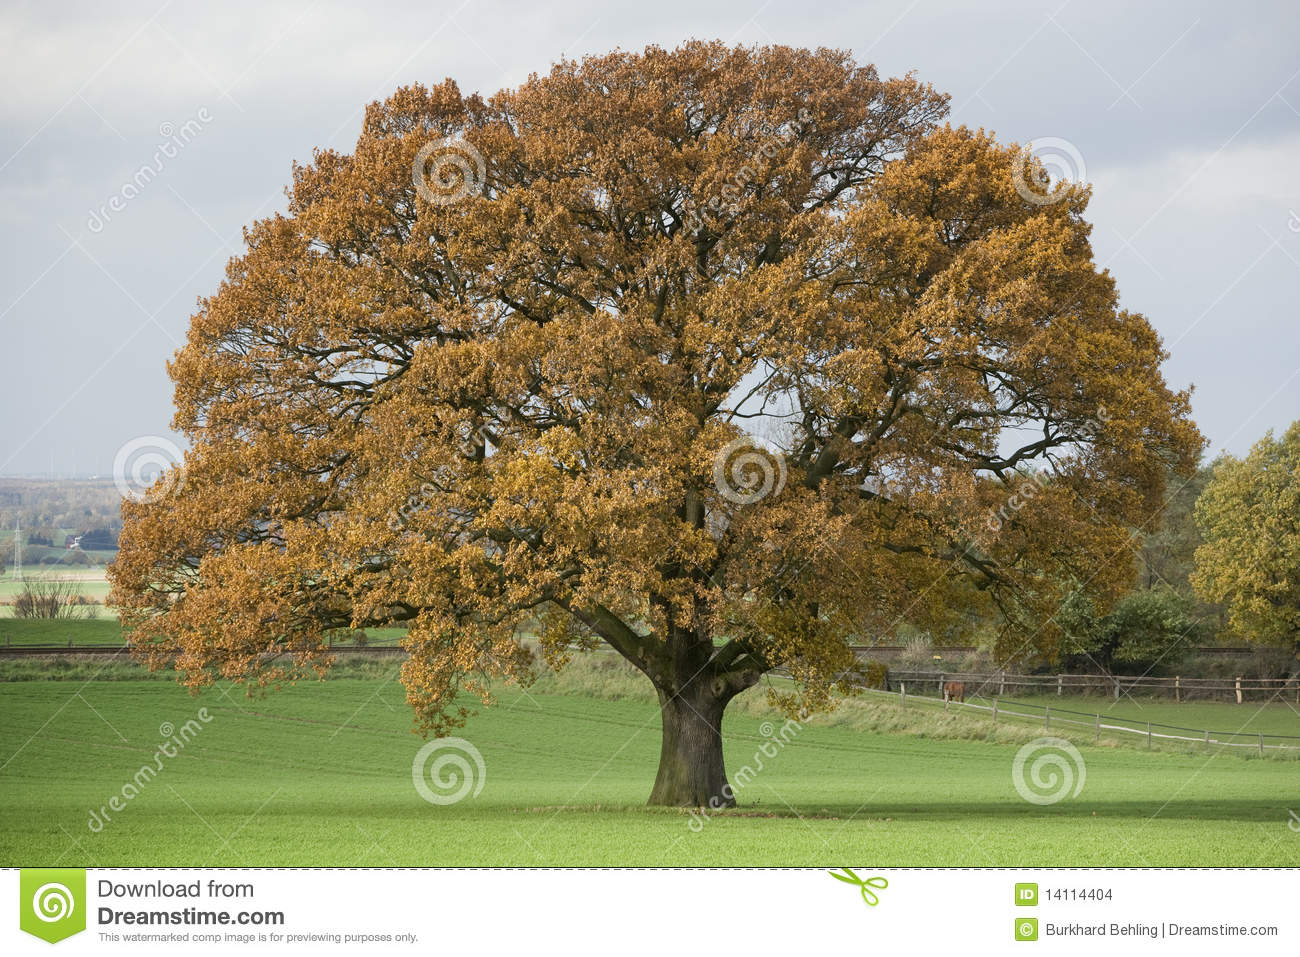 How to Estimate the Age of an Oak Tree